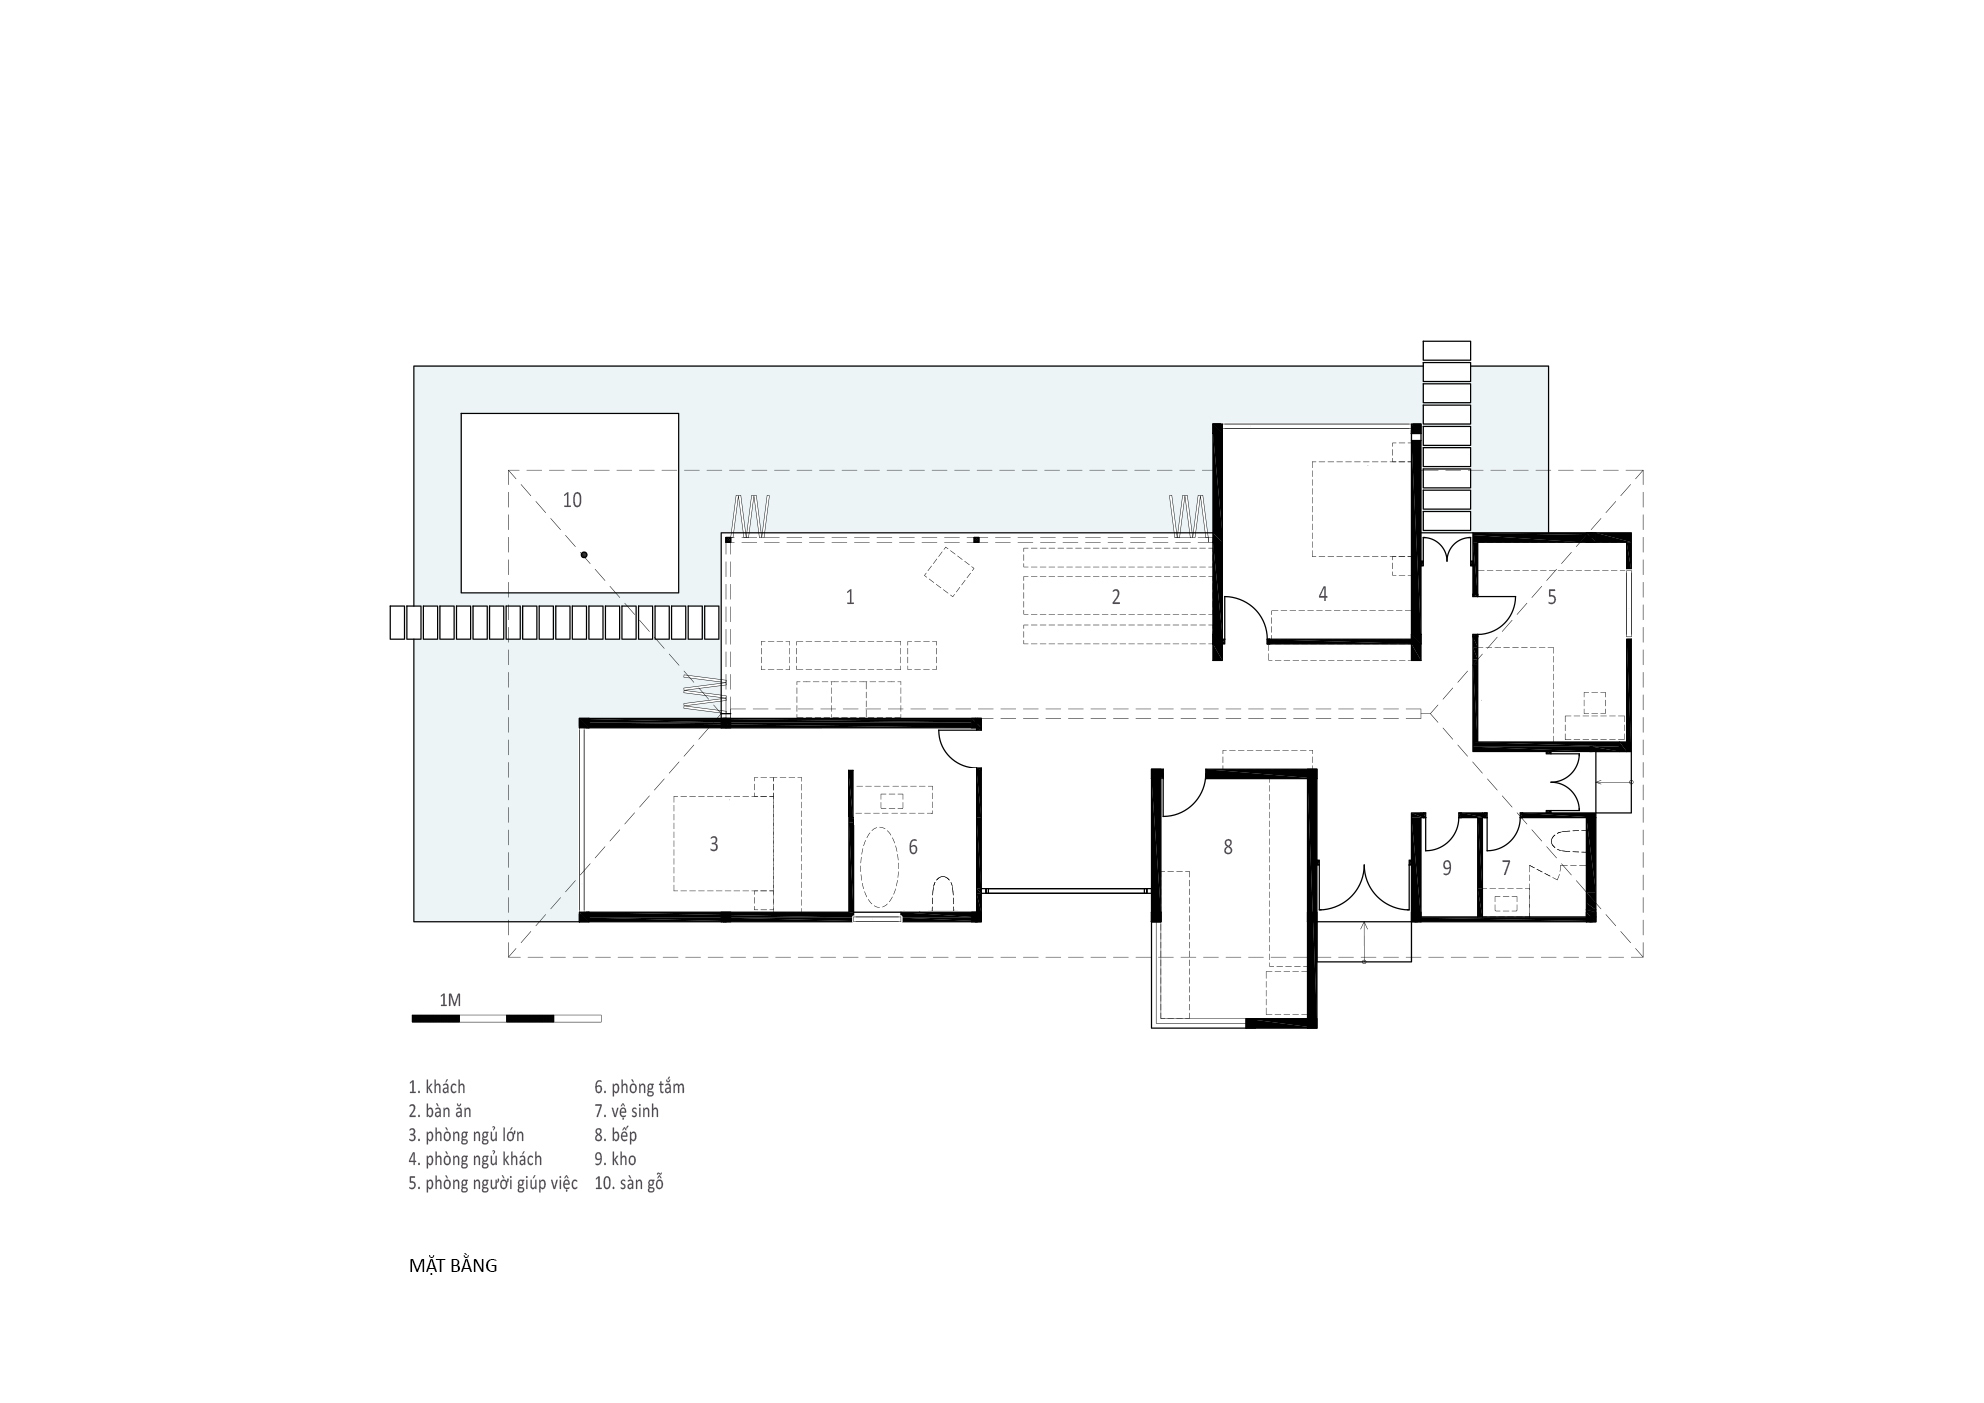 03-CTA-Am house-illu-2-2-MB